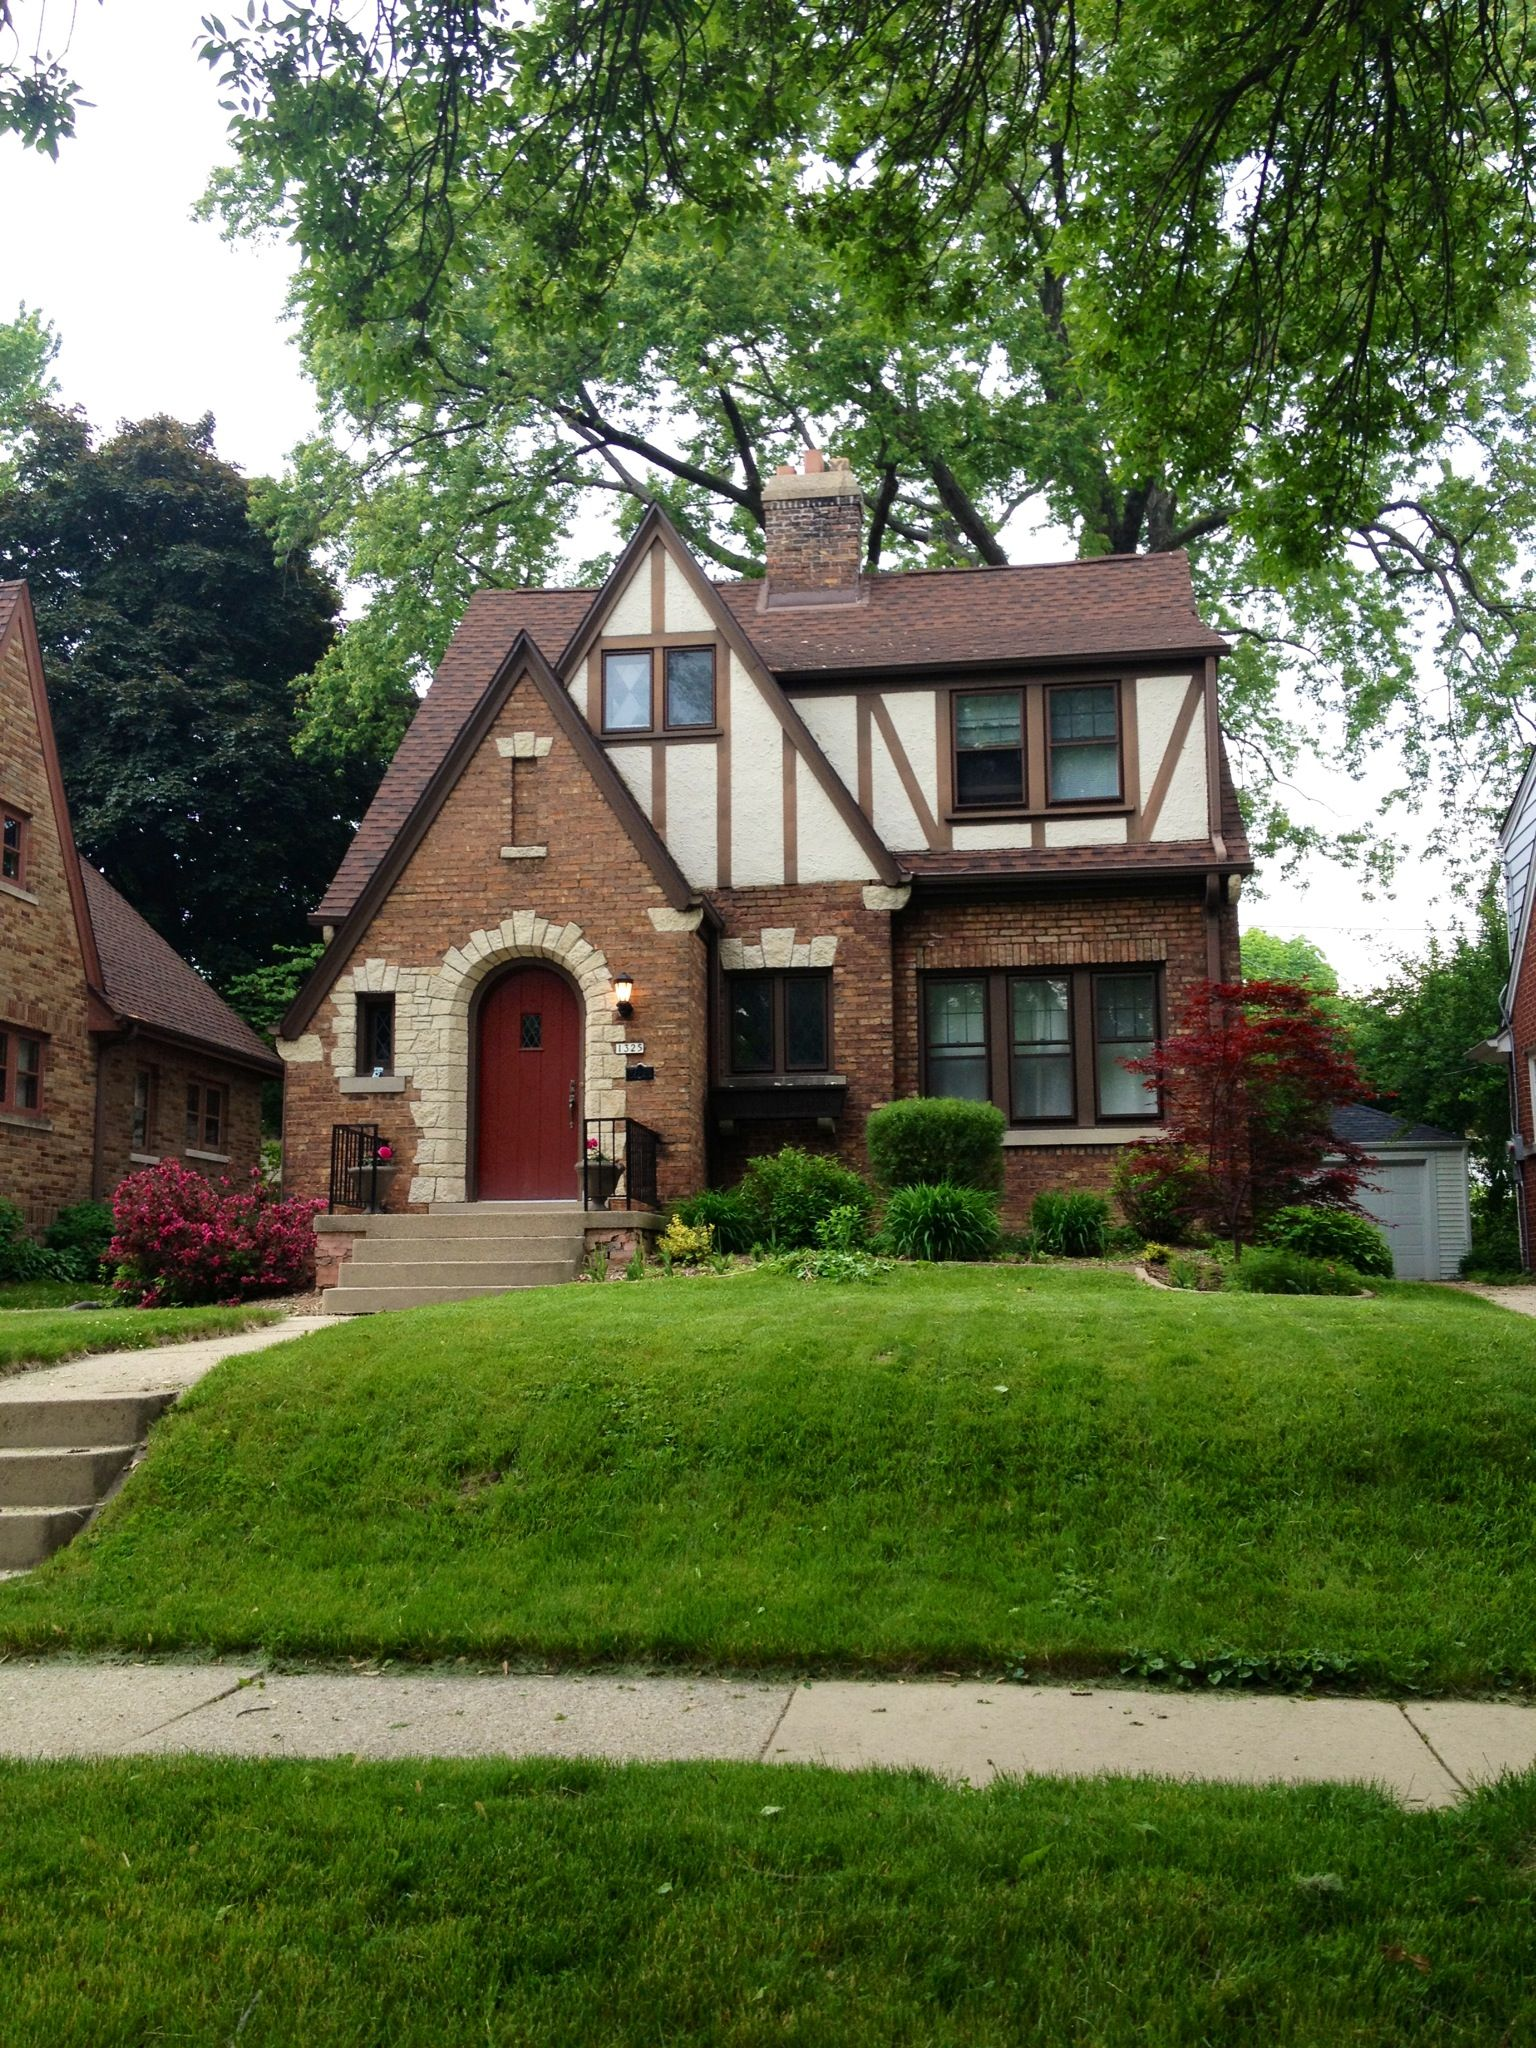 Adorable tudor style home reminds me of sugarhouse ut for Small house style pictures